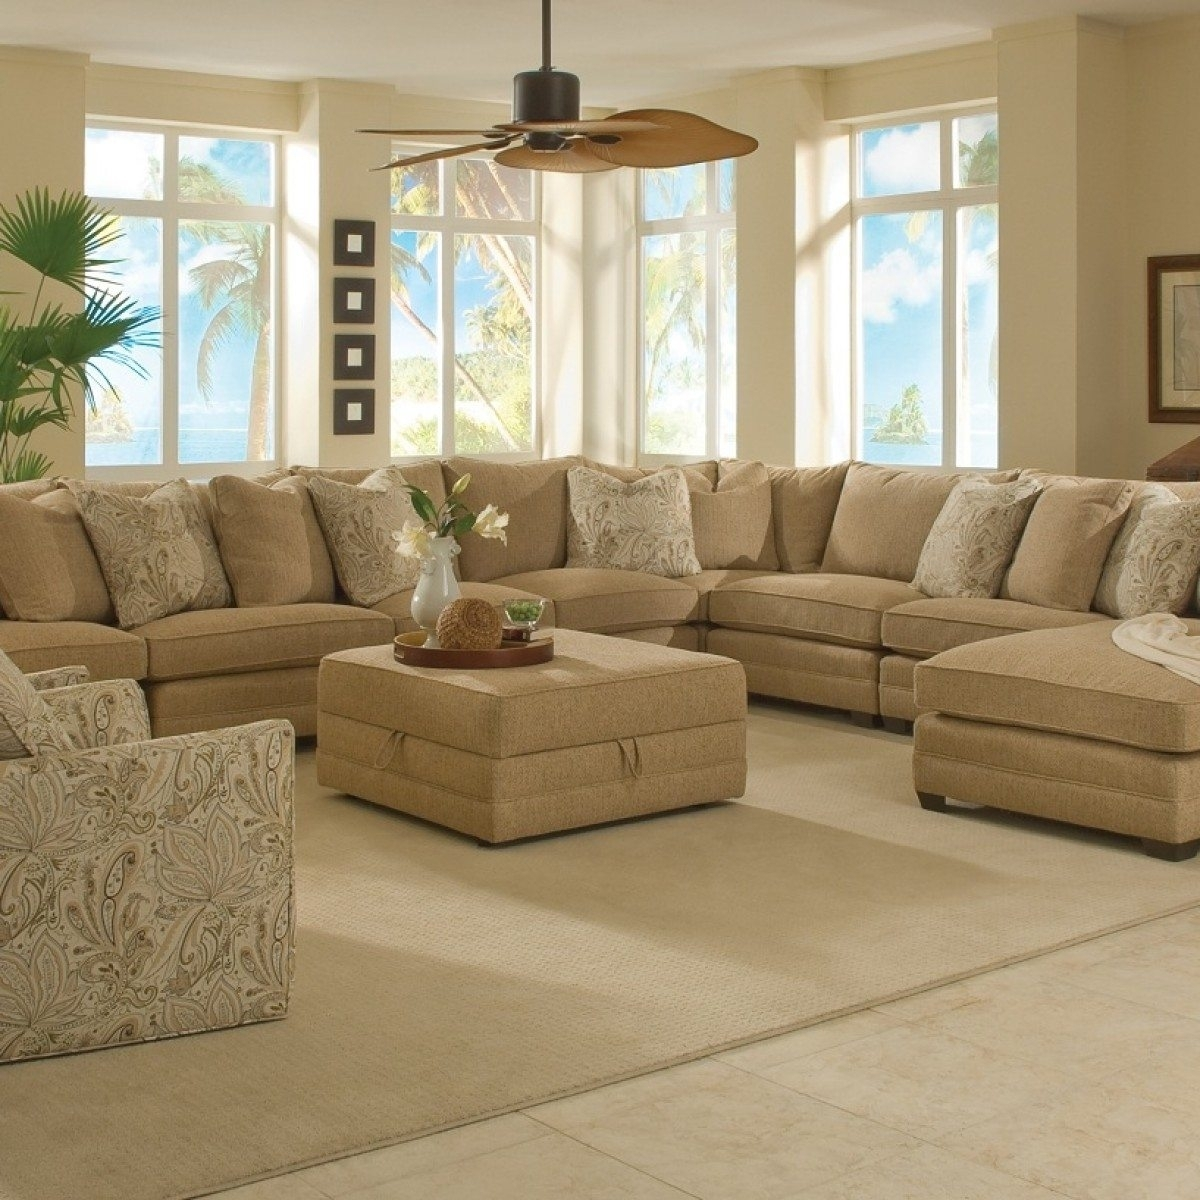 Sectional Sofa Design: Large Sofa Sectionals Chaise Bed Extra In Sectionals With Oversized Ottoman (Image 6 of 10)